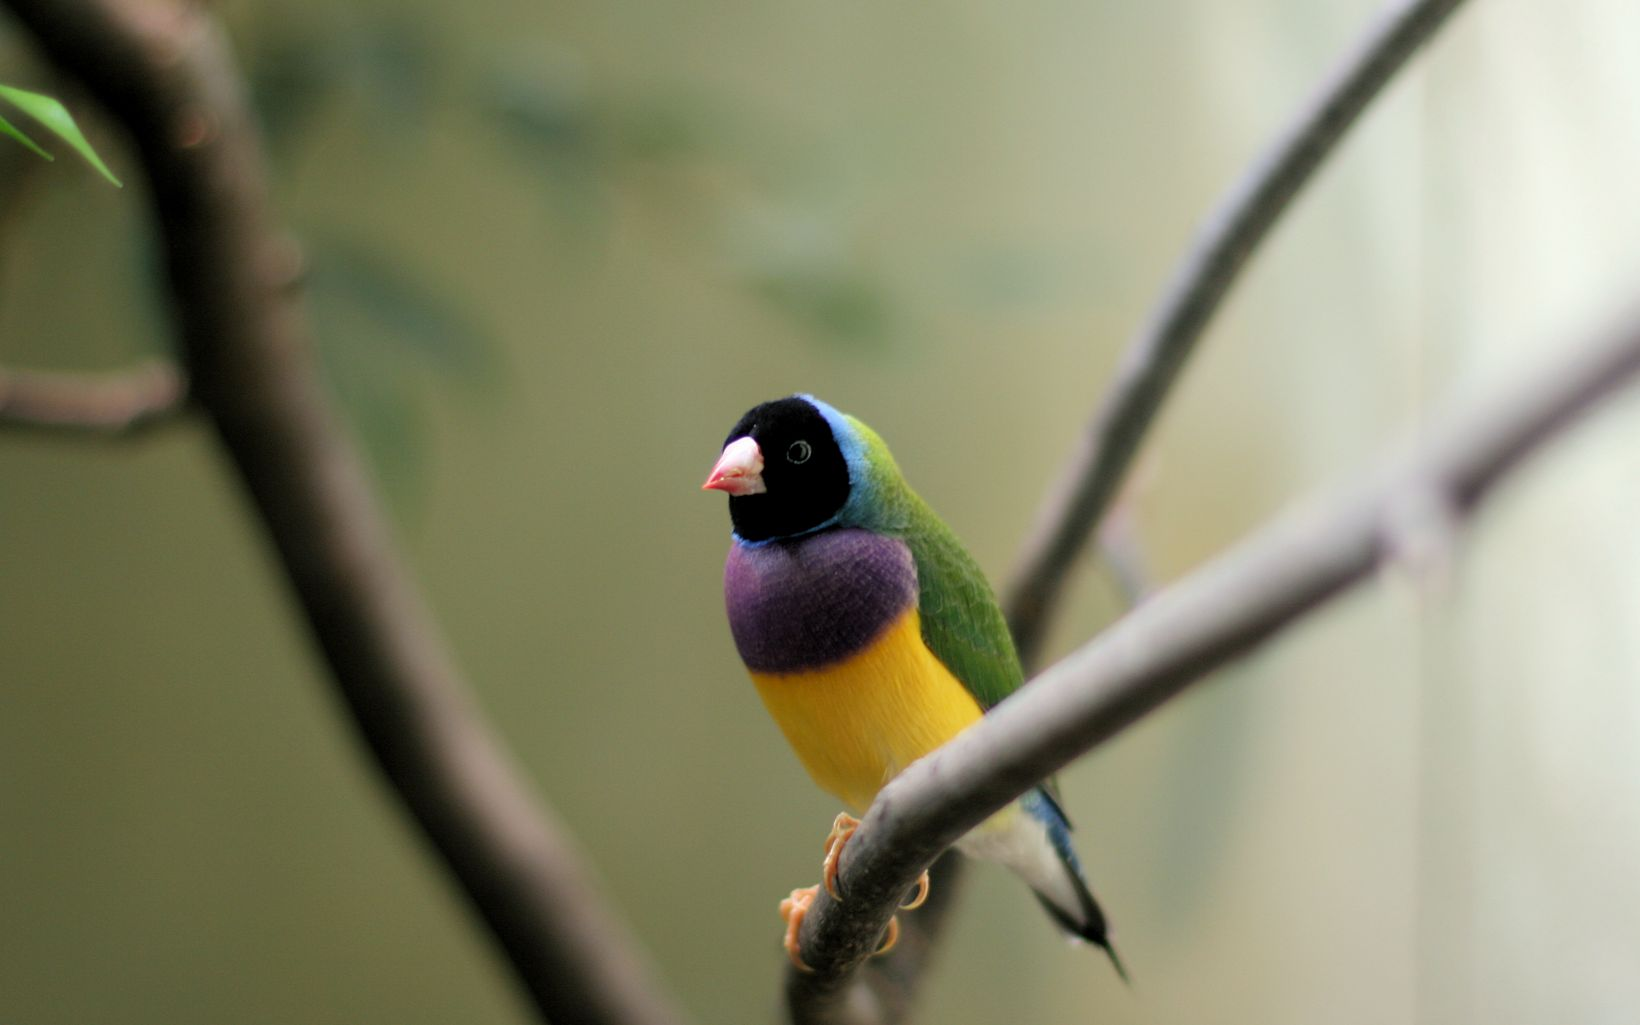 or the Rainbow Finch, is a colourful passerine bird native to Australia.